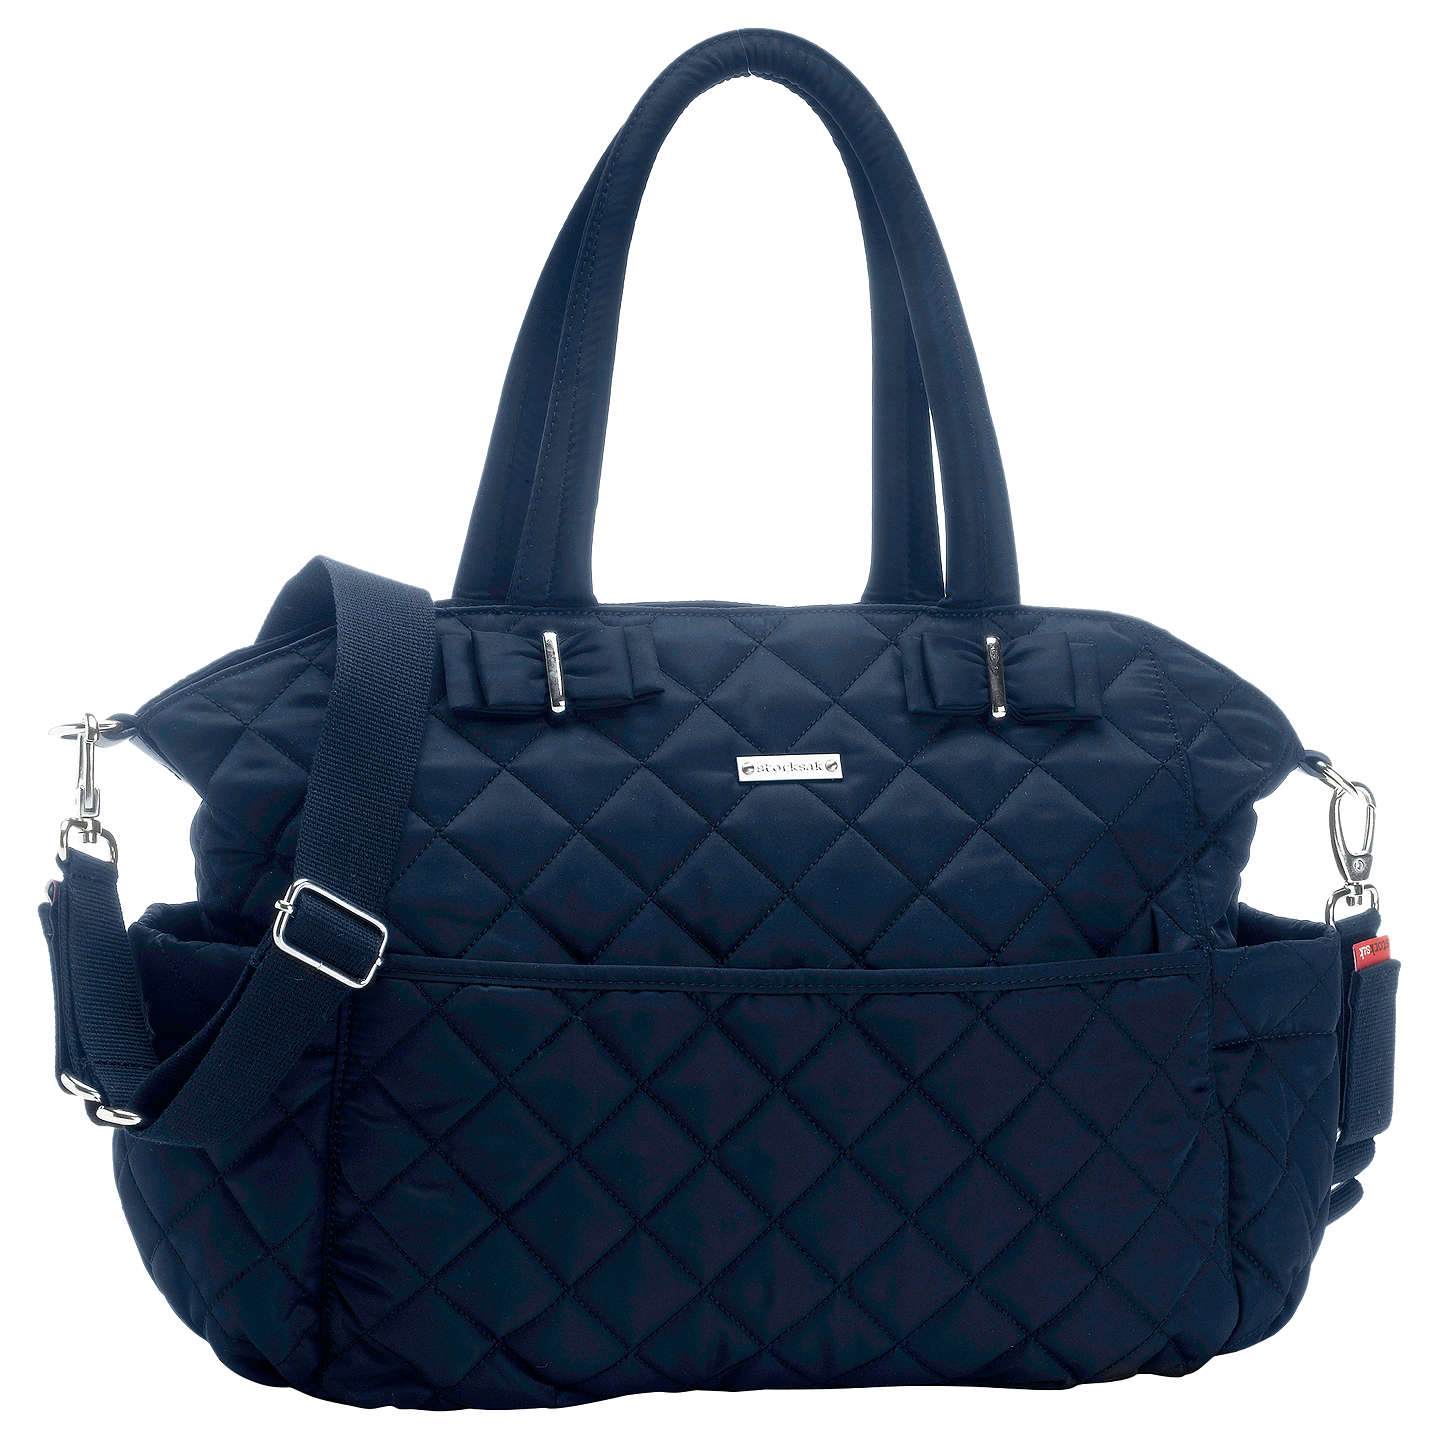 BuyStorksak Bobby Changing Bag, Navy Online at johnlewis.com